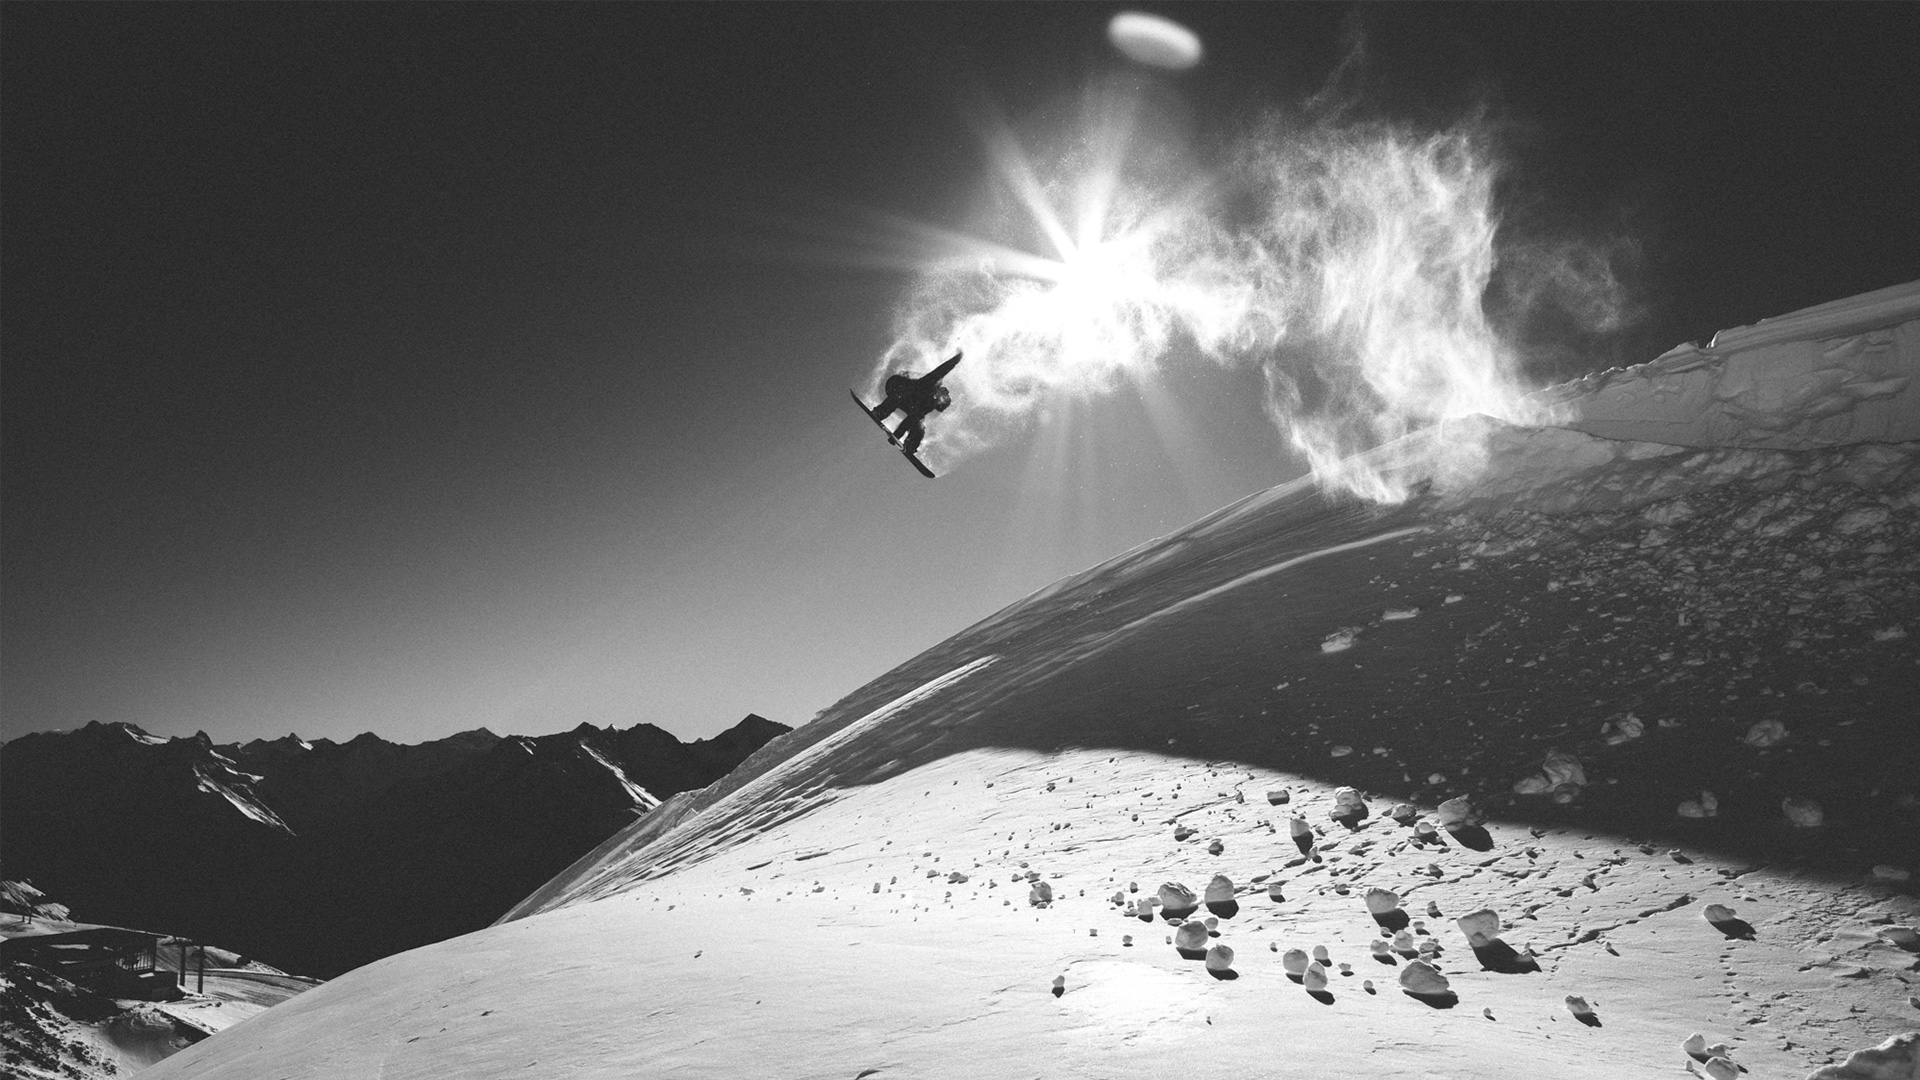 1920x1080 - Snowboarding Wallpapers 2